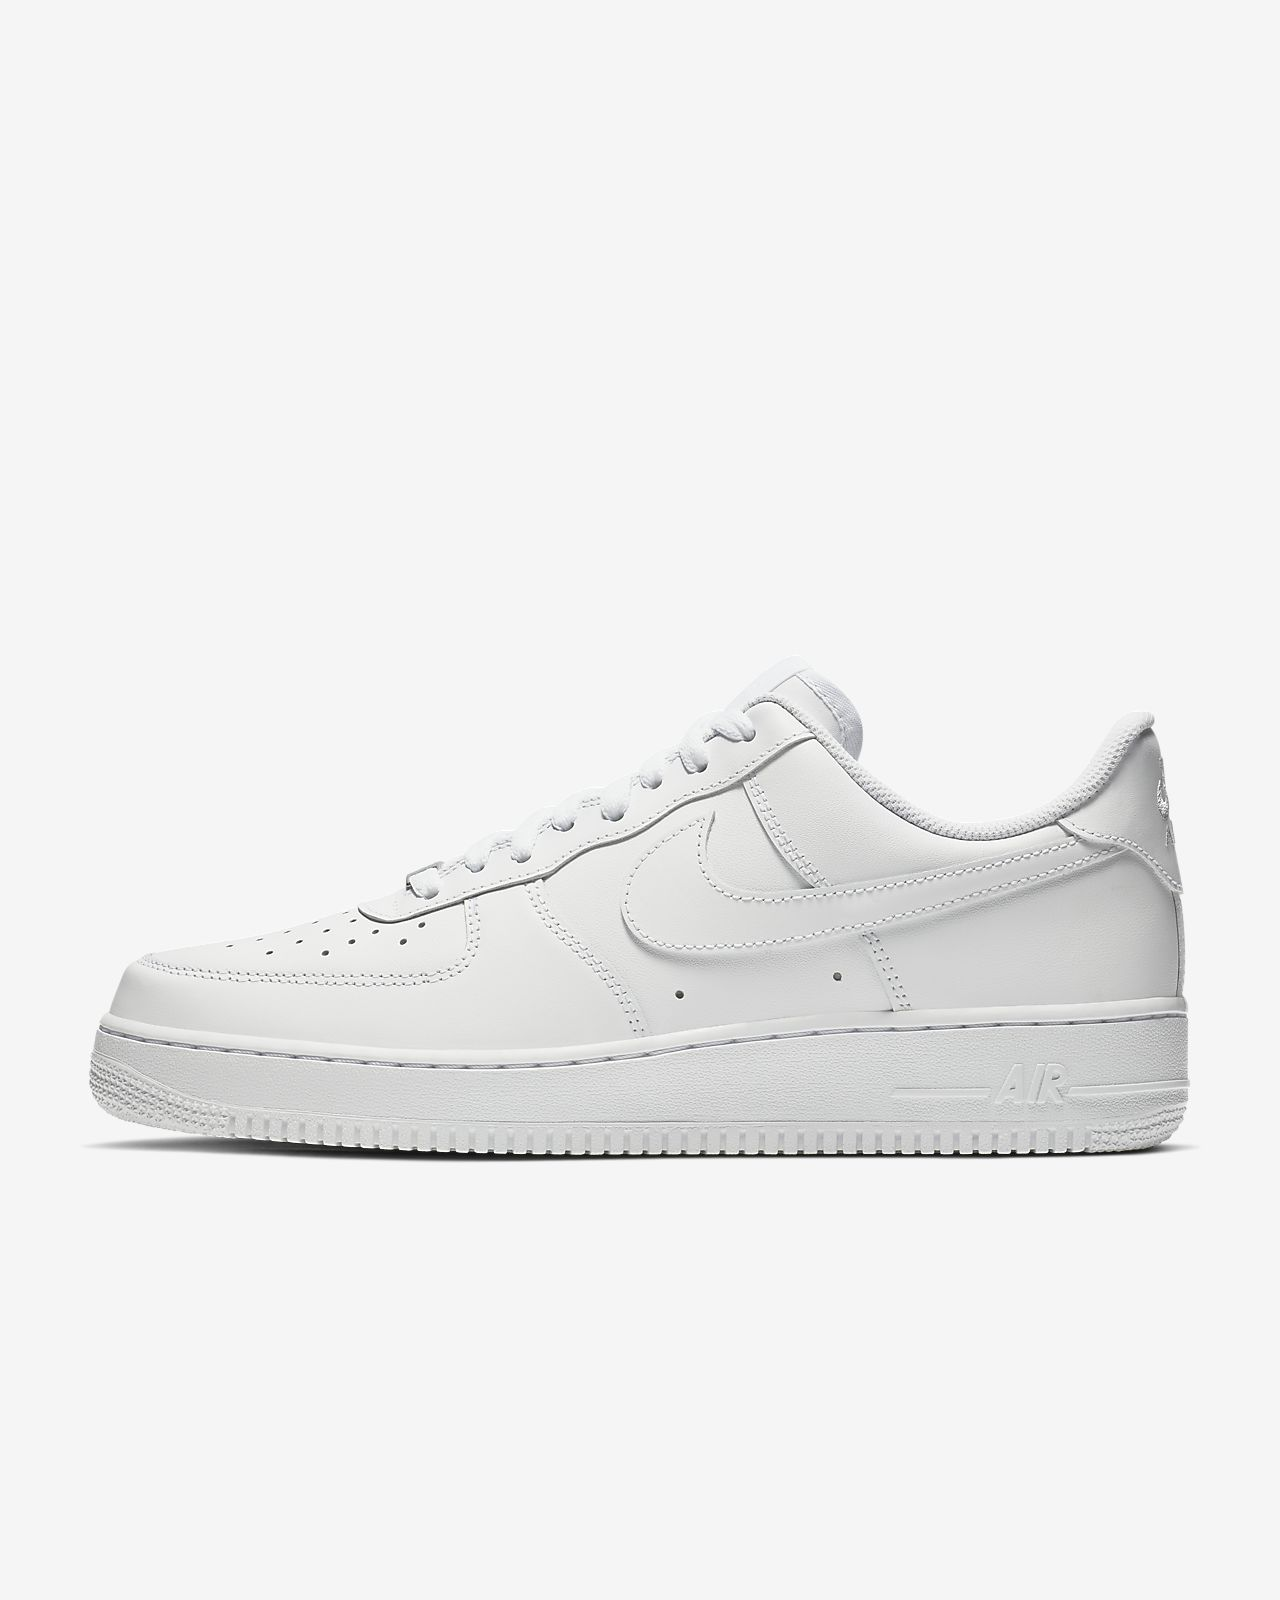 men's black air force 1 nike nz